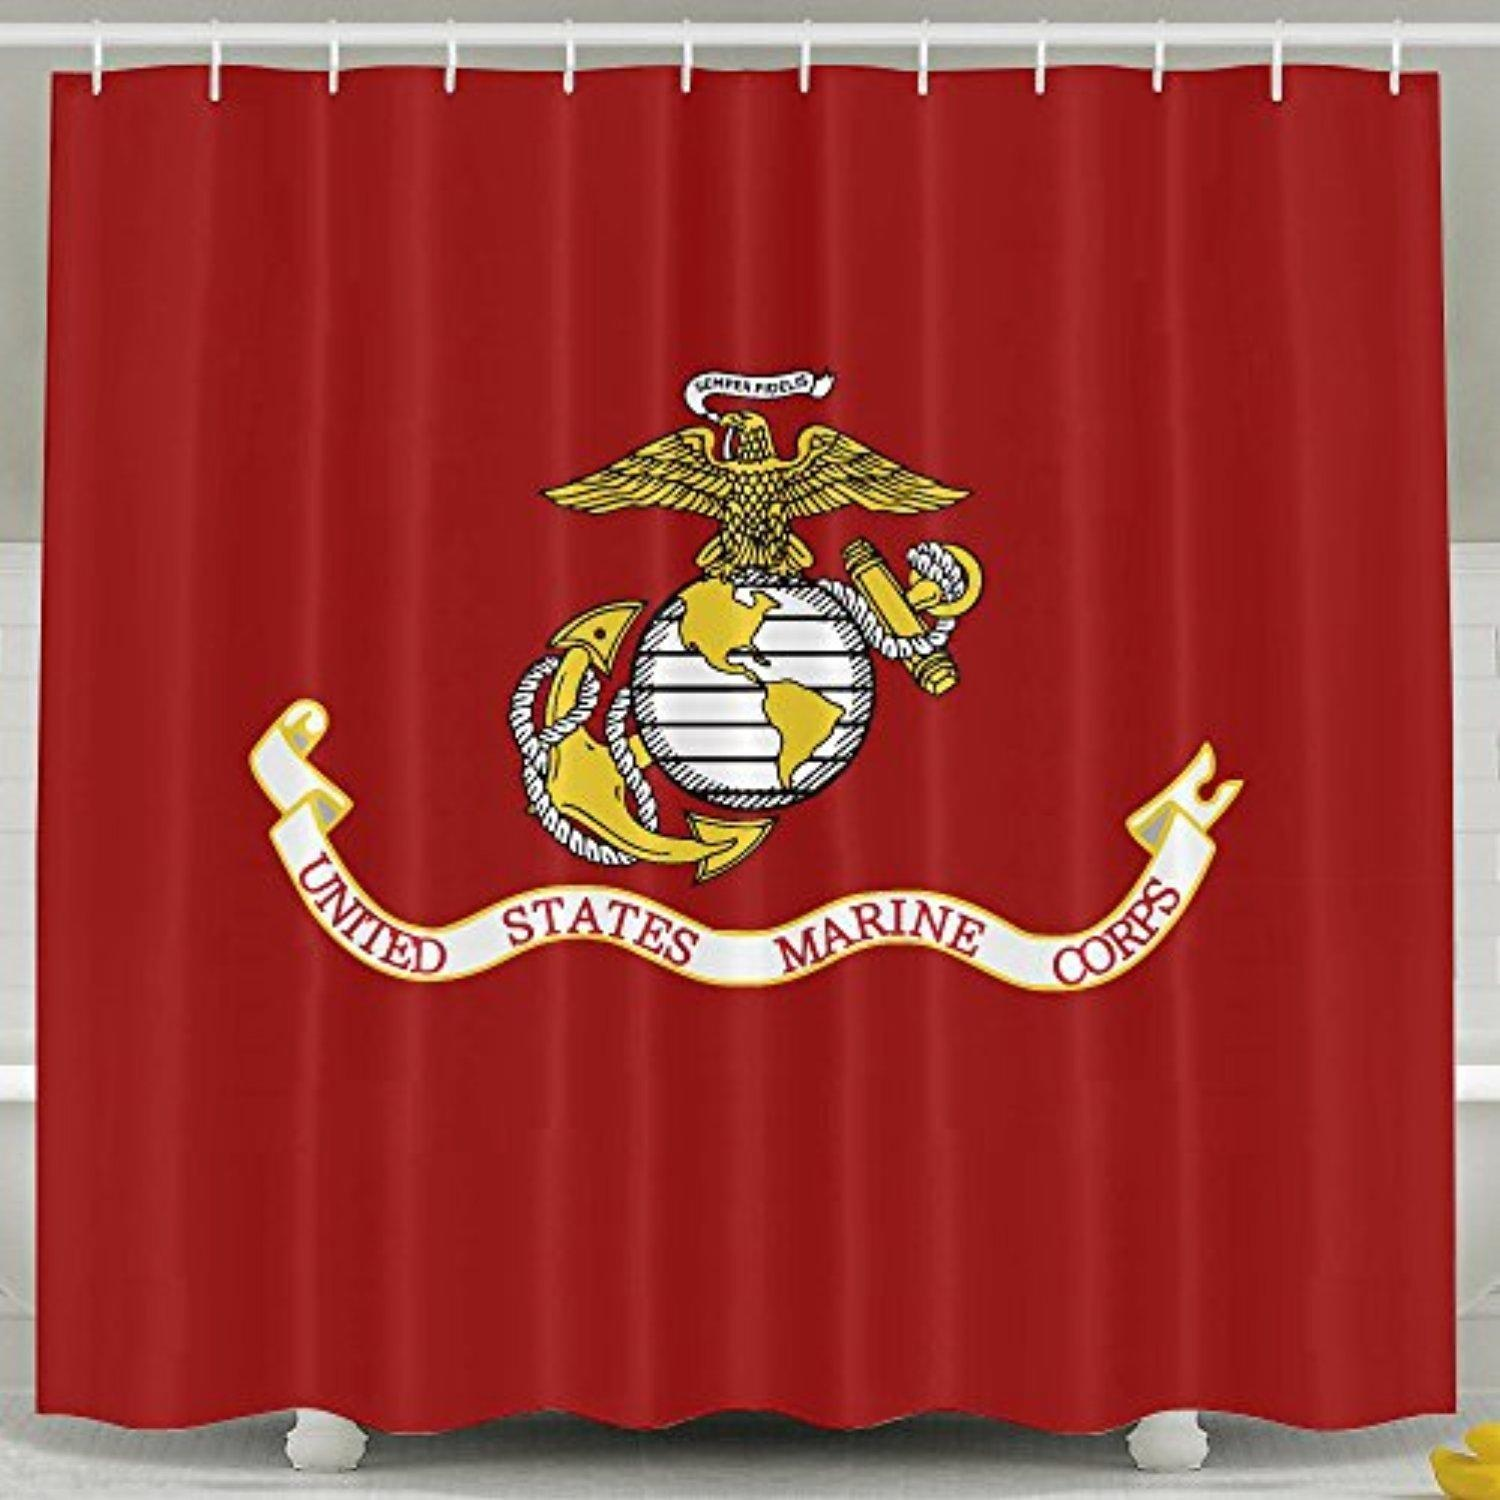 United States Marine Corps USMC High Polyester Hooks Shower Curtains Opaquewaterproof 6072inch In 3 Sizes